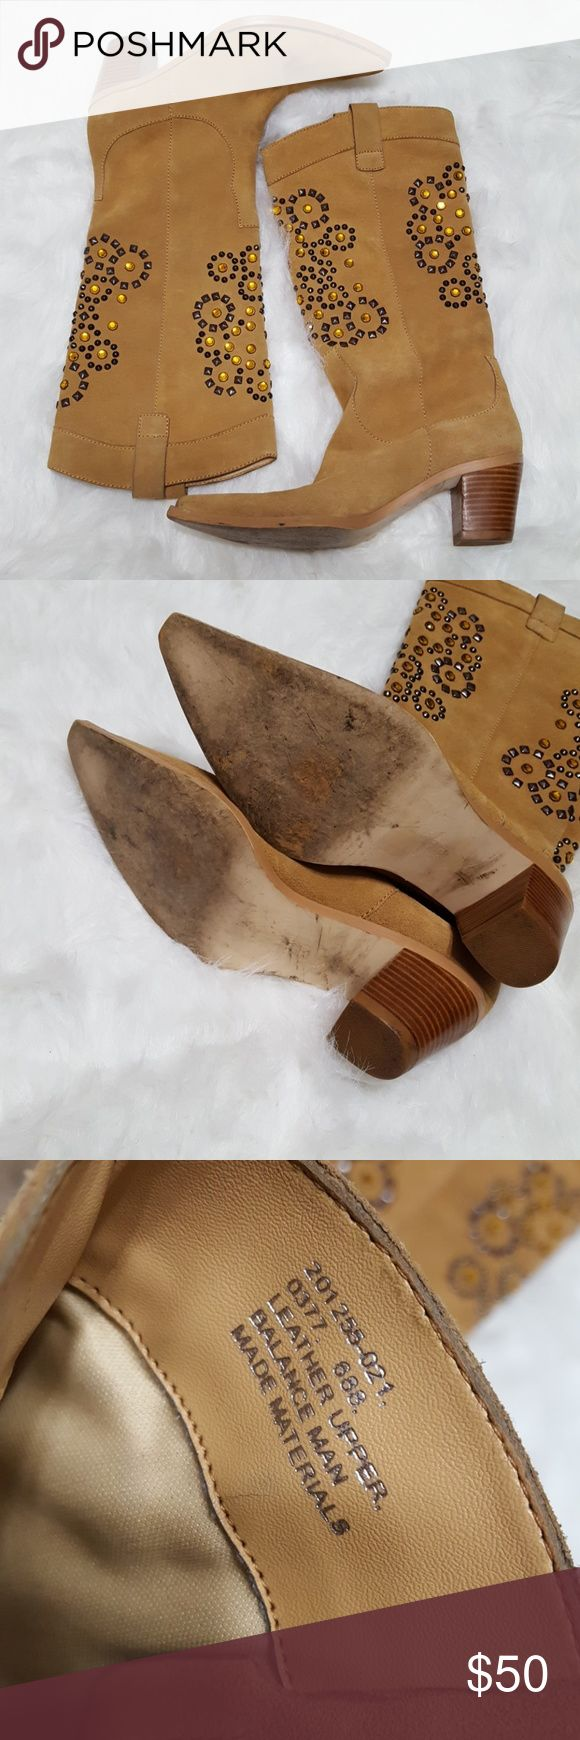 Colin Stuart studded cowboy boots Pre-owned cowboy boots by Colin Stuart. Tobacco brown with Cuban heels. Suede. Embellishments on front and back. They do have some minor wear but are in really good condition. Colin Stuart Shoes Heeled Boots